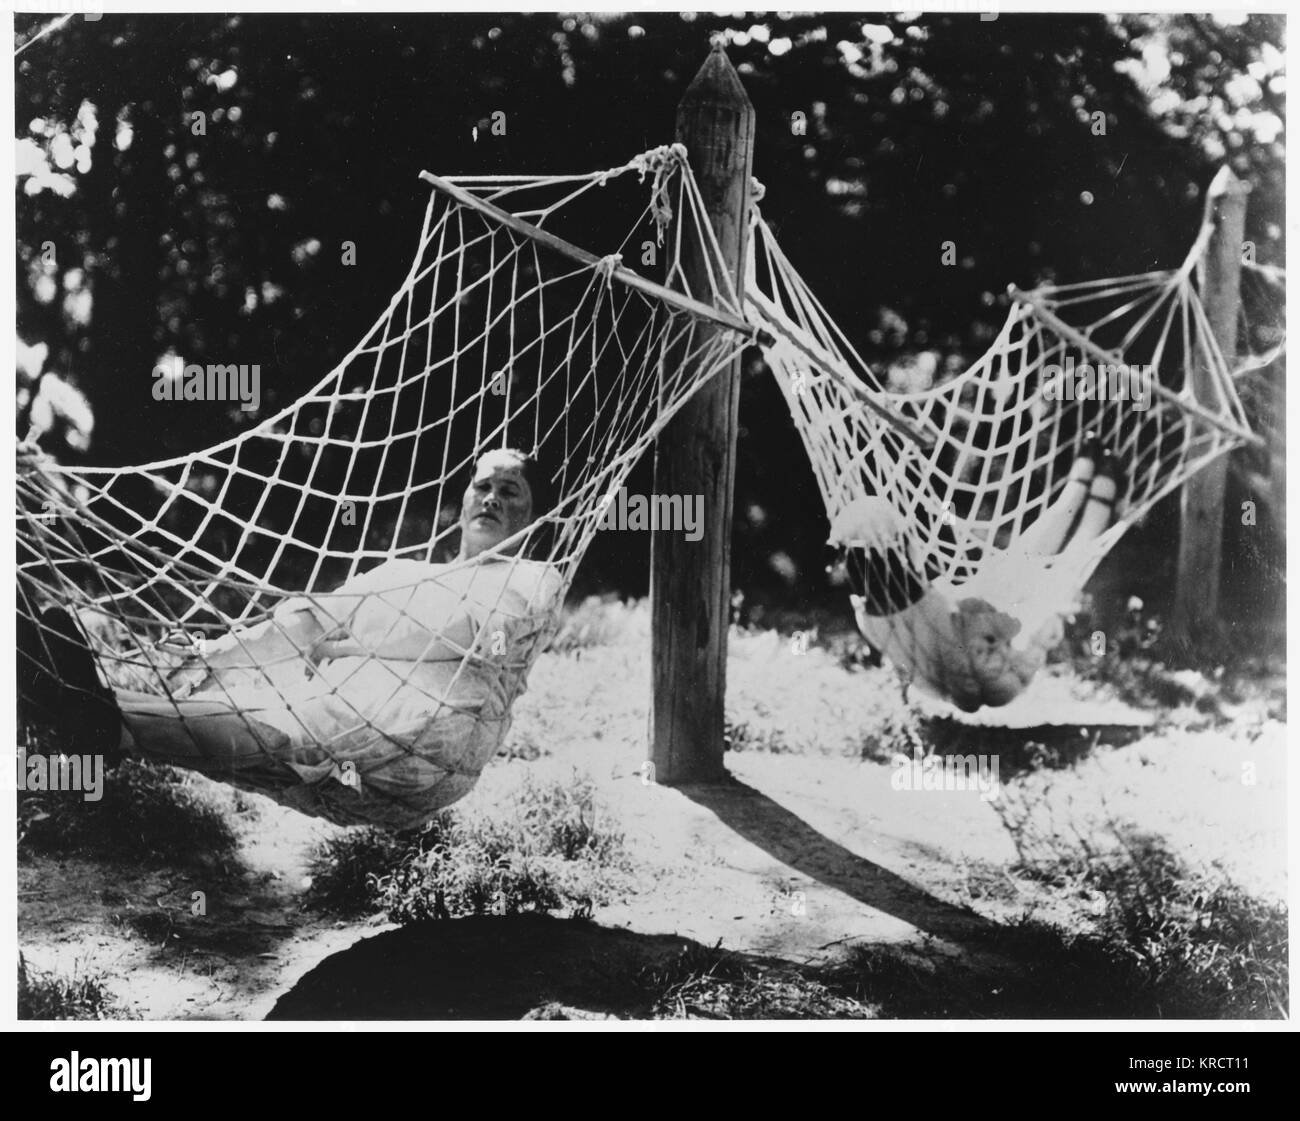 A. Filipovva relaxes in a hammock in Gorky Park, Moscow Date: 1931 - Stock Image